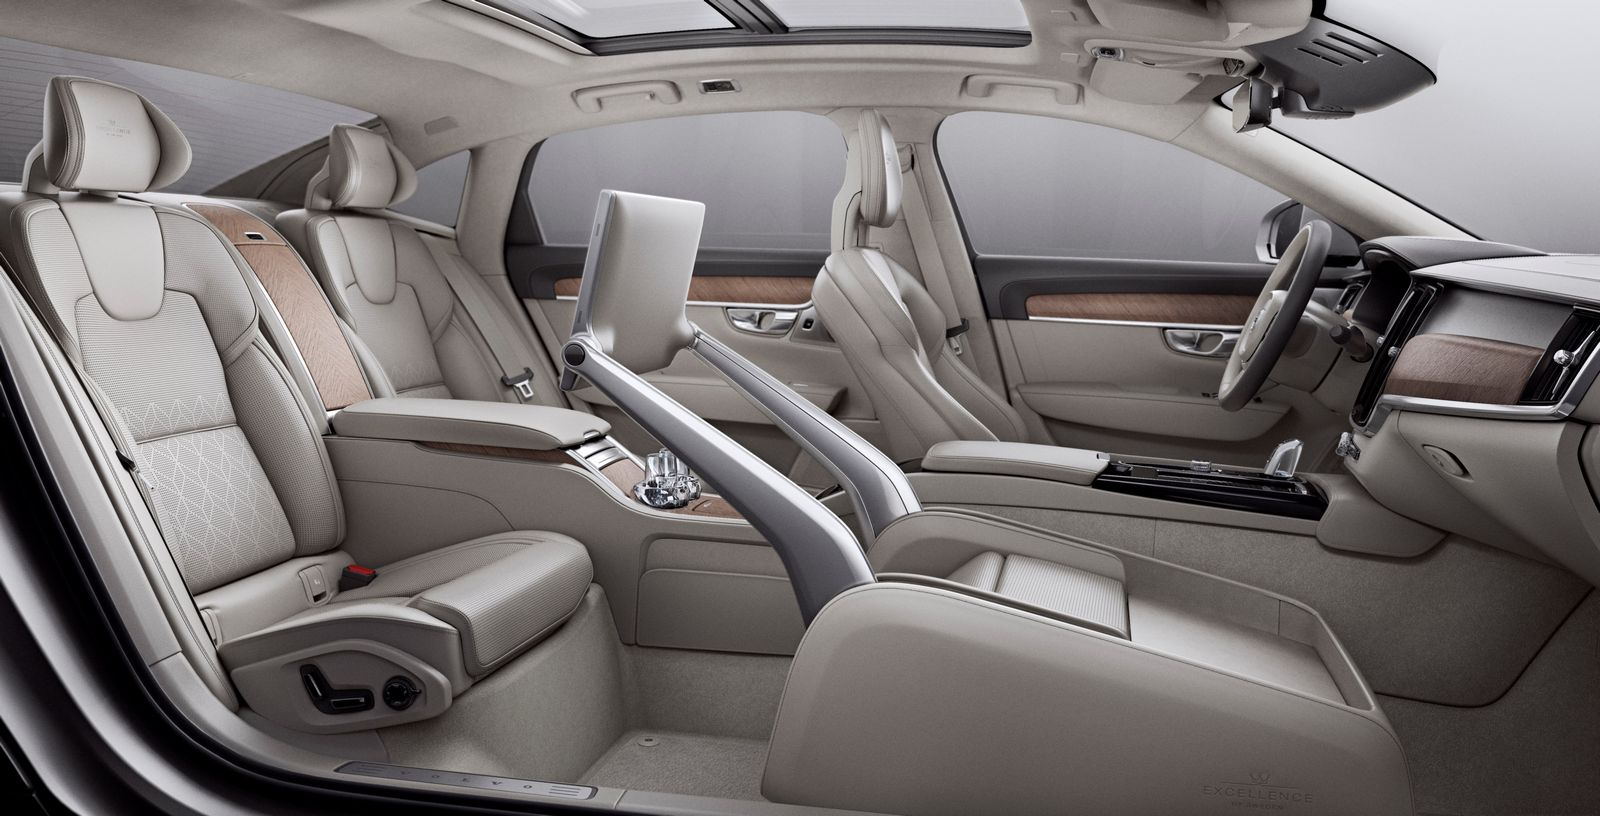 2015 - [Volvo] S90 - Page 14 Volvo%2BS90%2BChina%2B12